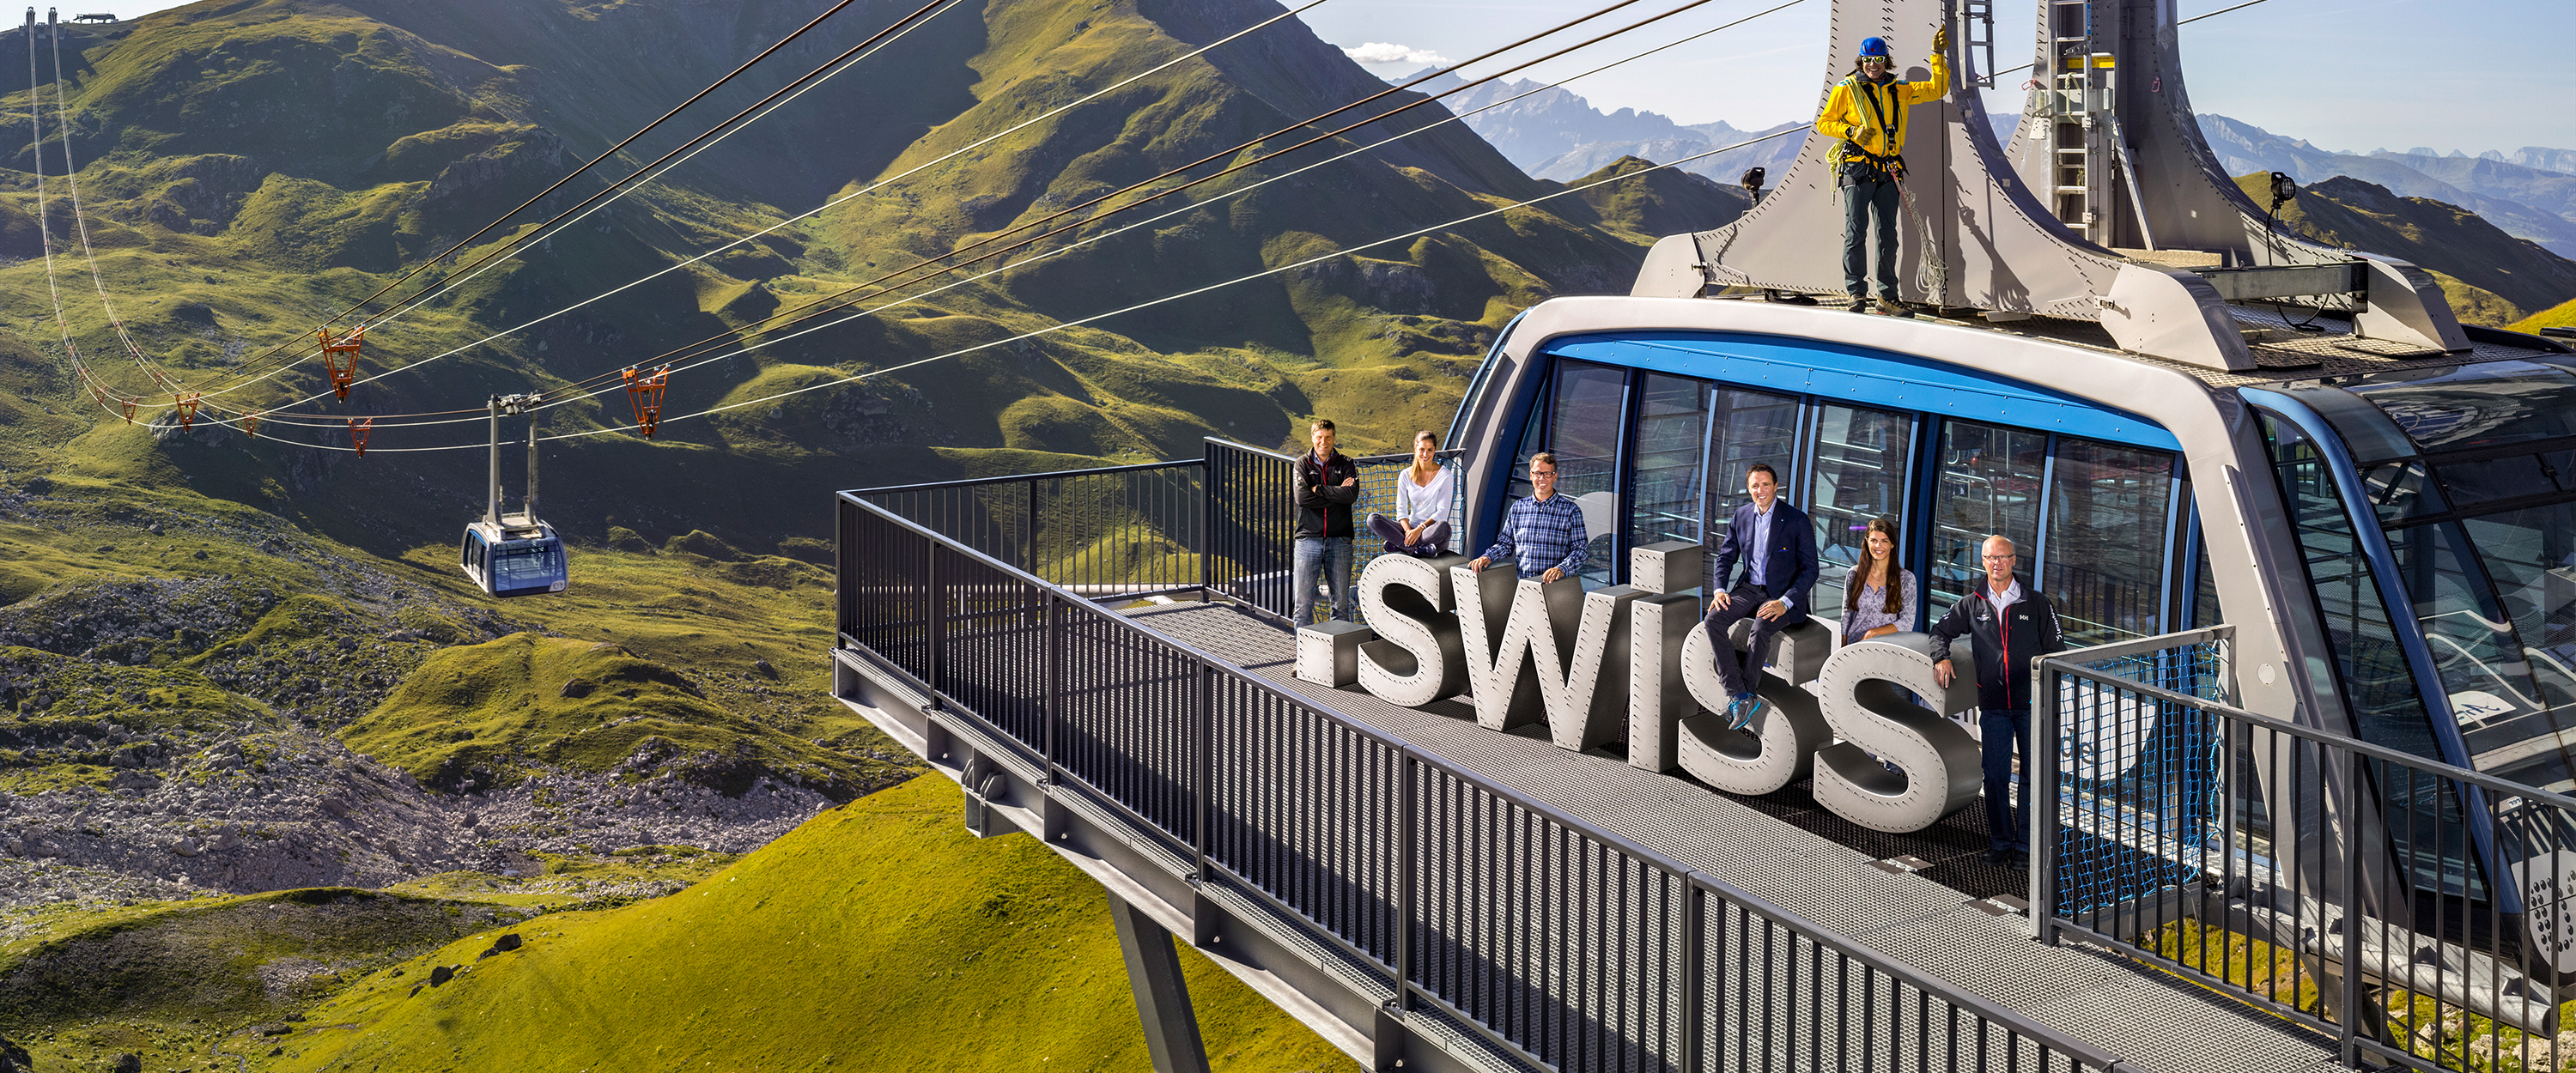 Arosa_dot_swiss